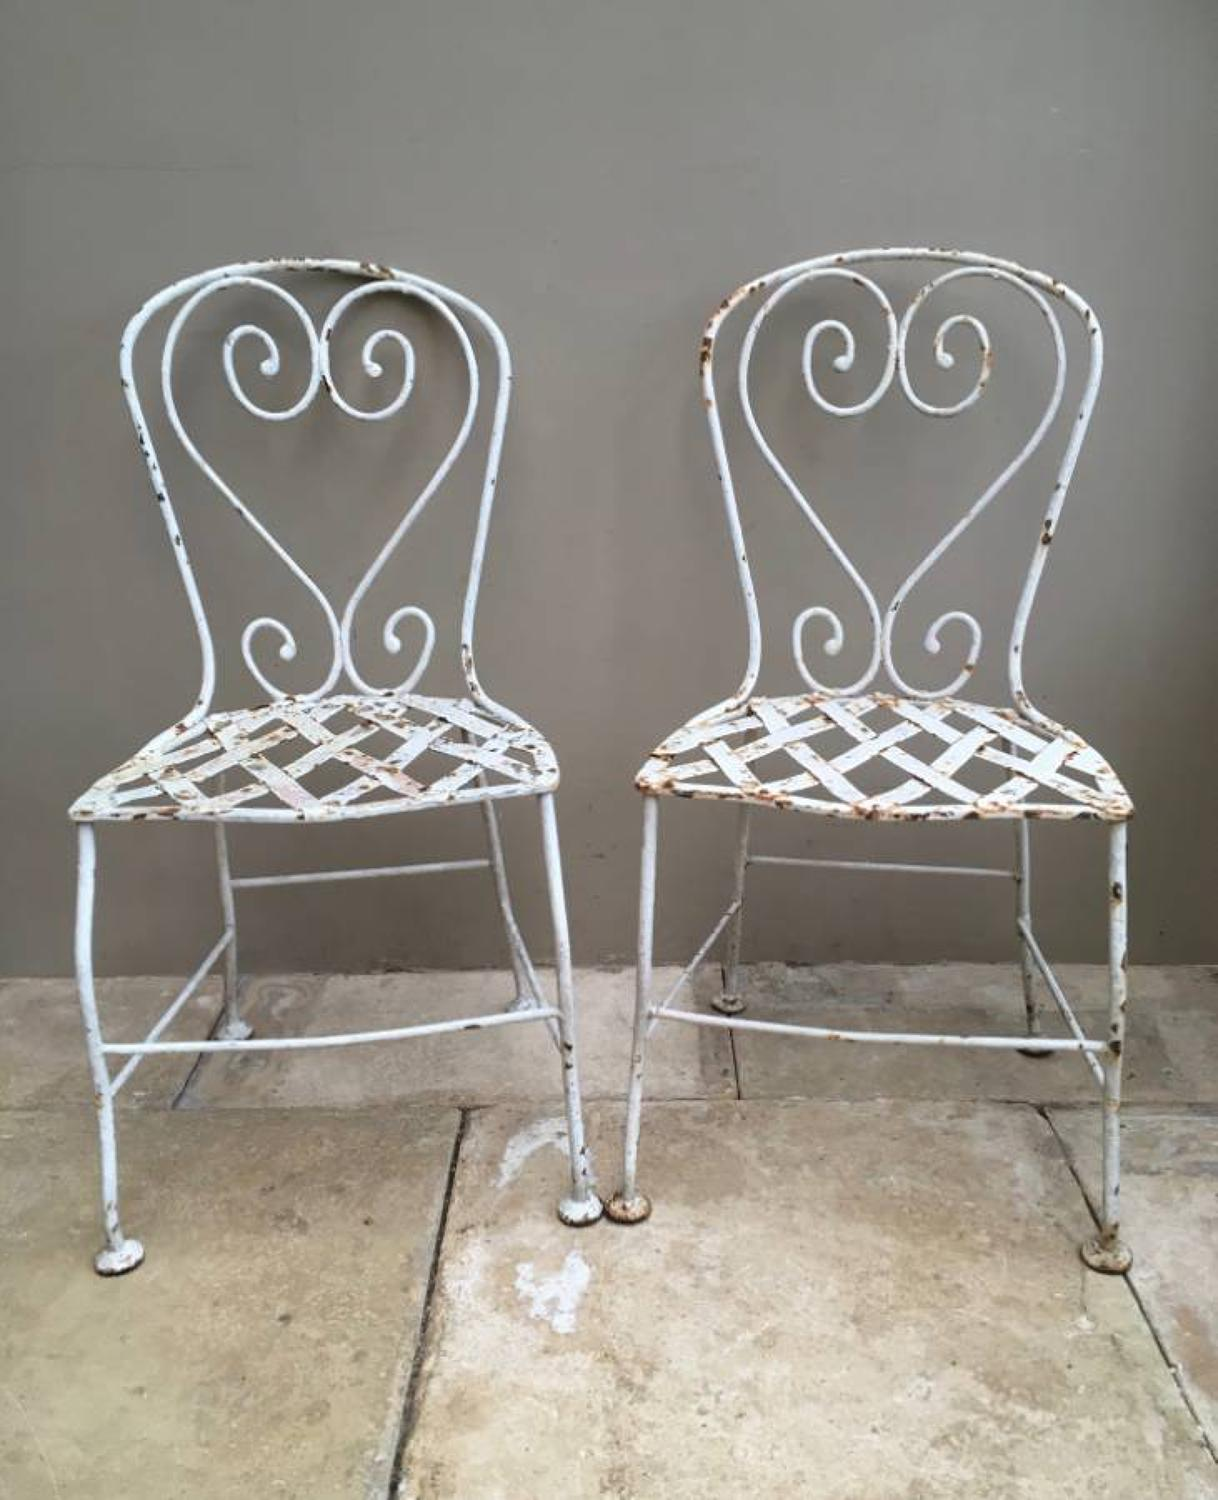 Late Victorian Pair of Garden Chairs - Wonderful Paint